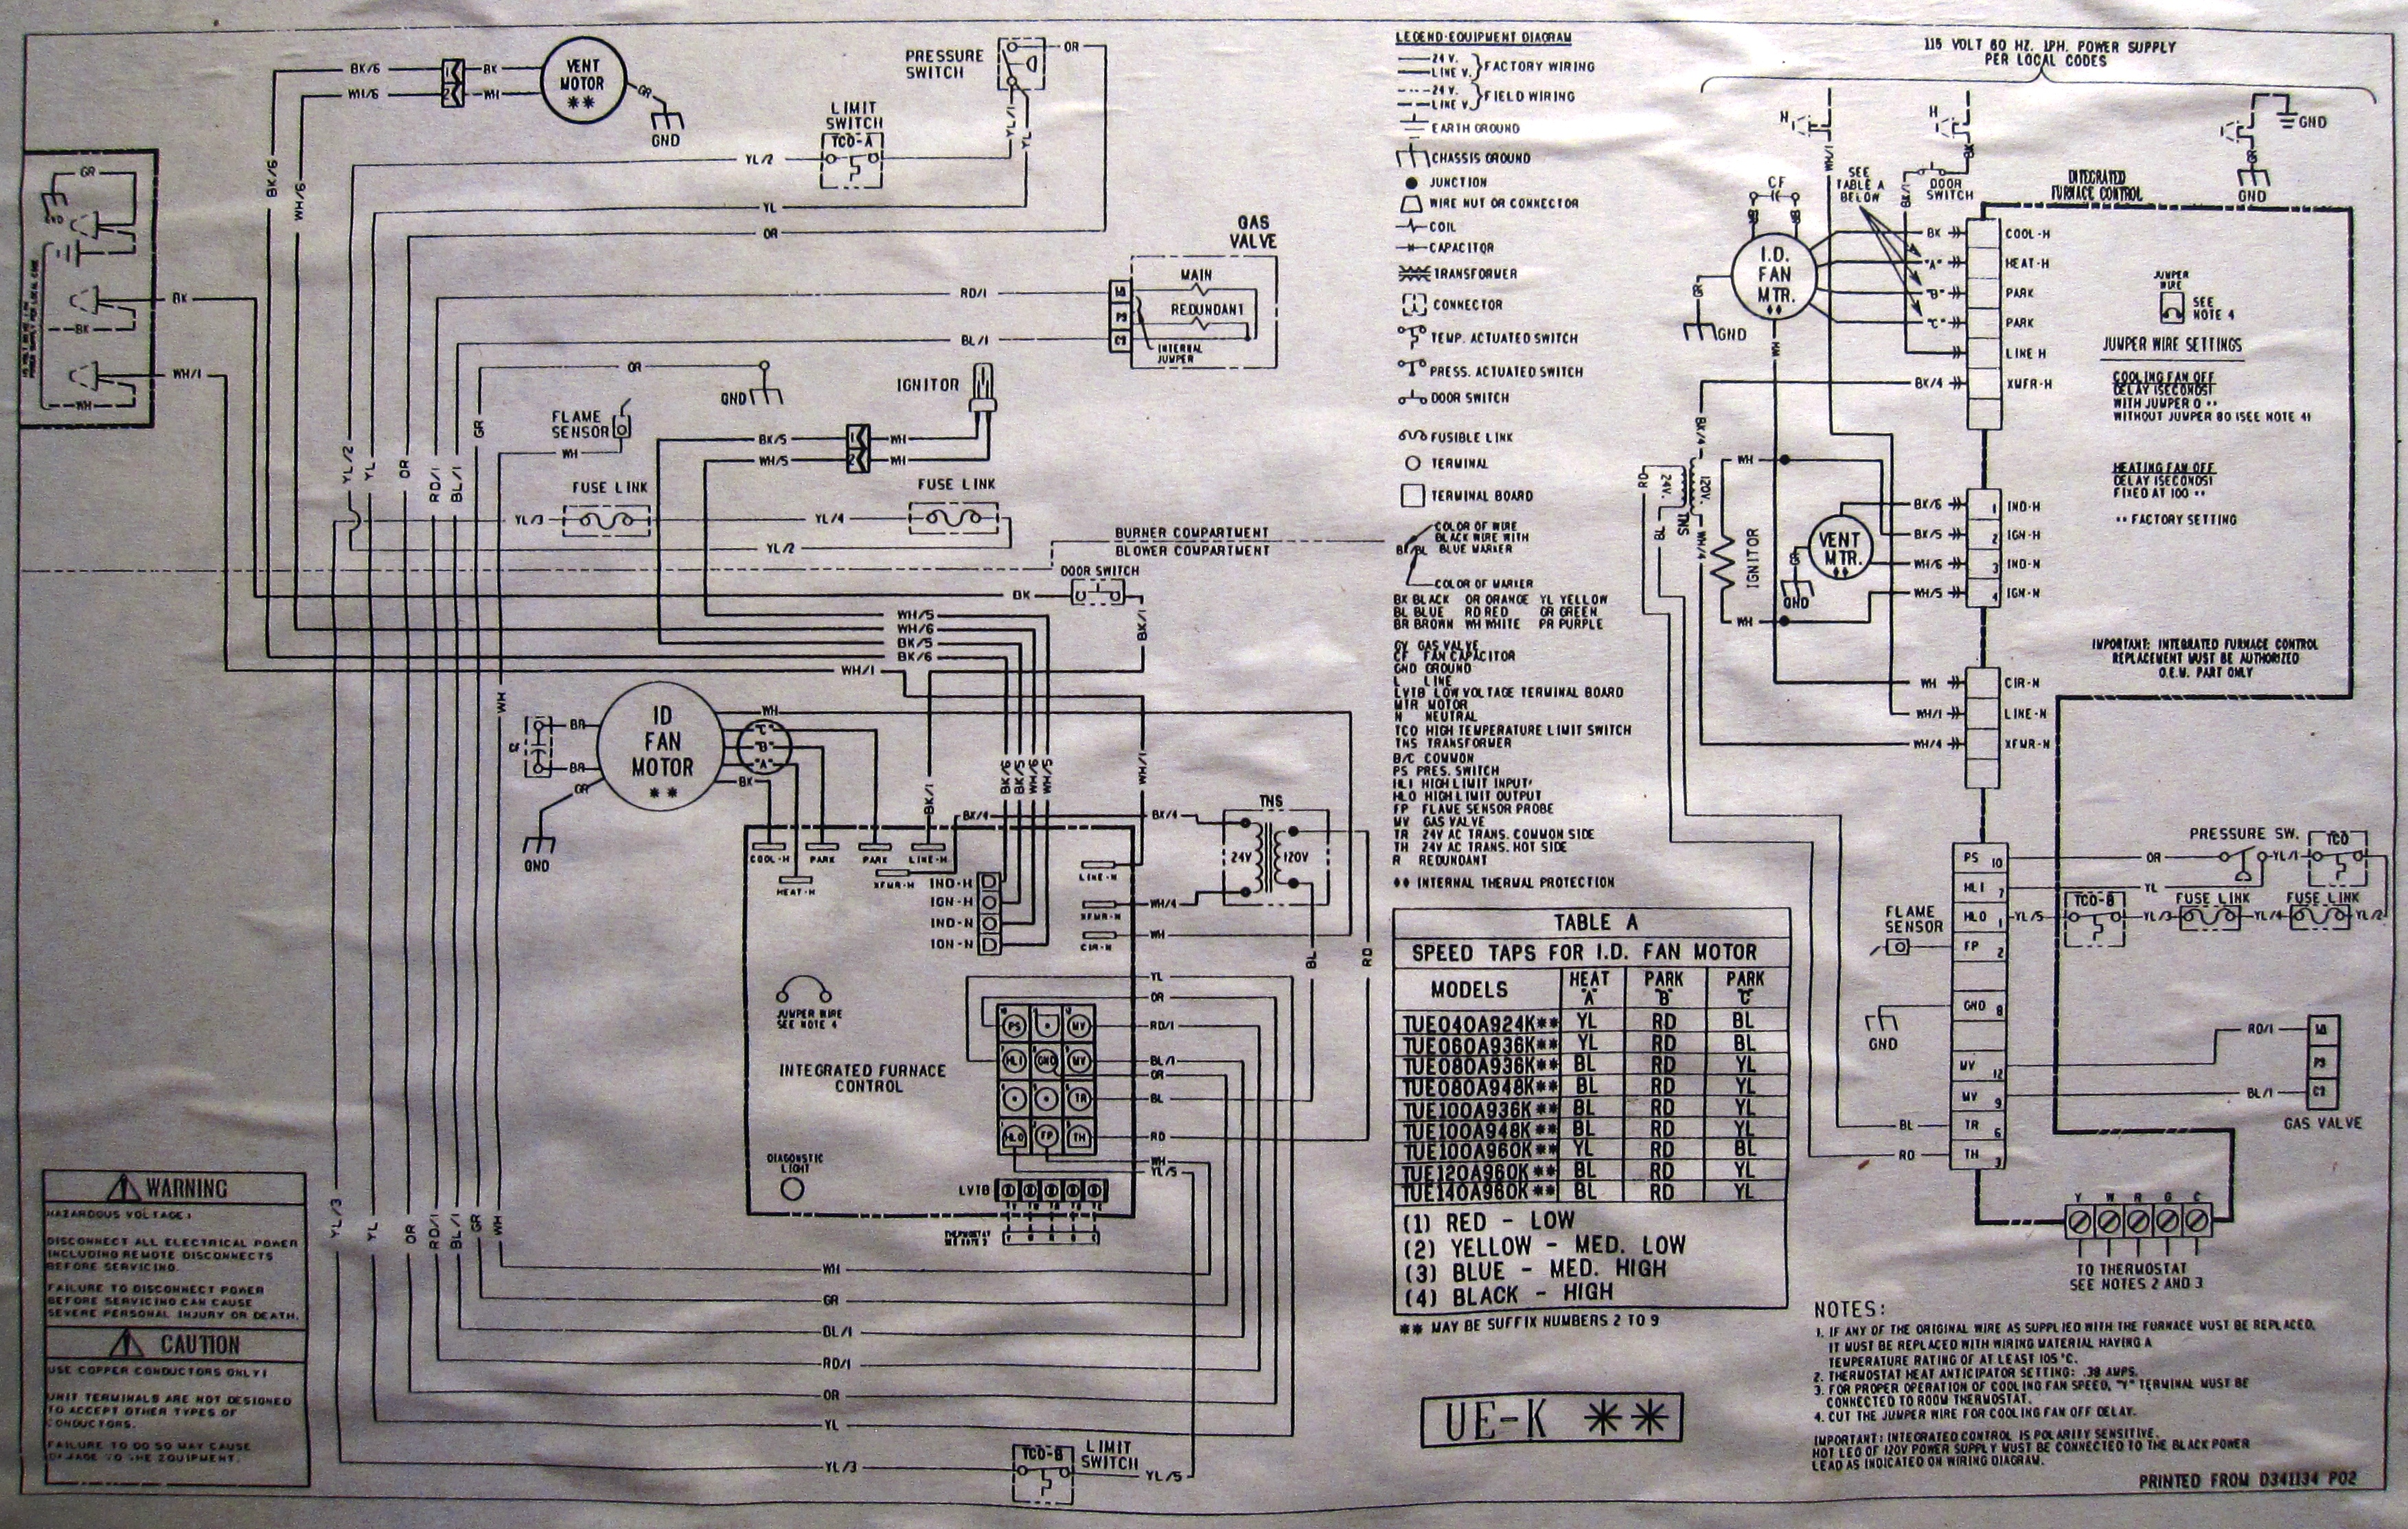 ... 2013 01 15_234029_wiring_diagram idec relay wiring diagram idec spdt relay  wiring diagram ~ odicis idec electronic